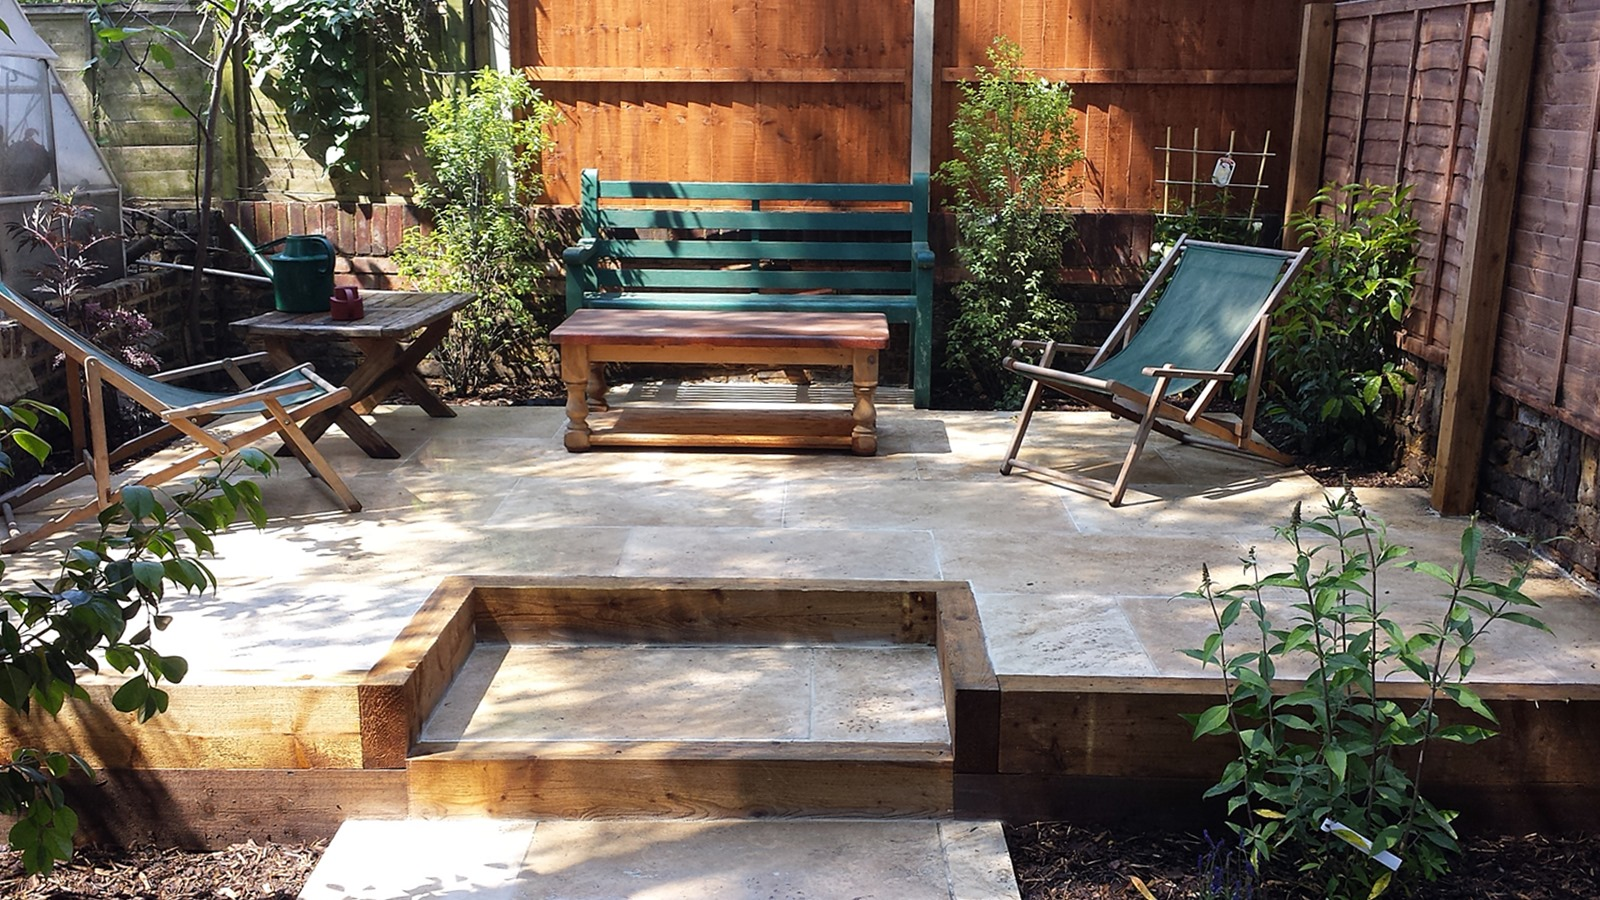 Travertine Paving Patio Modern Garden Design Landscaping ... on Modern Backyard Patio Ideas  id=40772